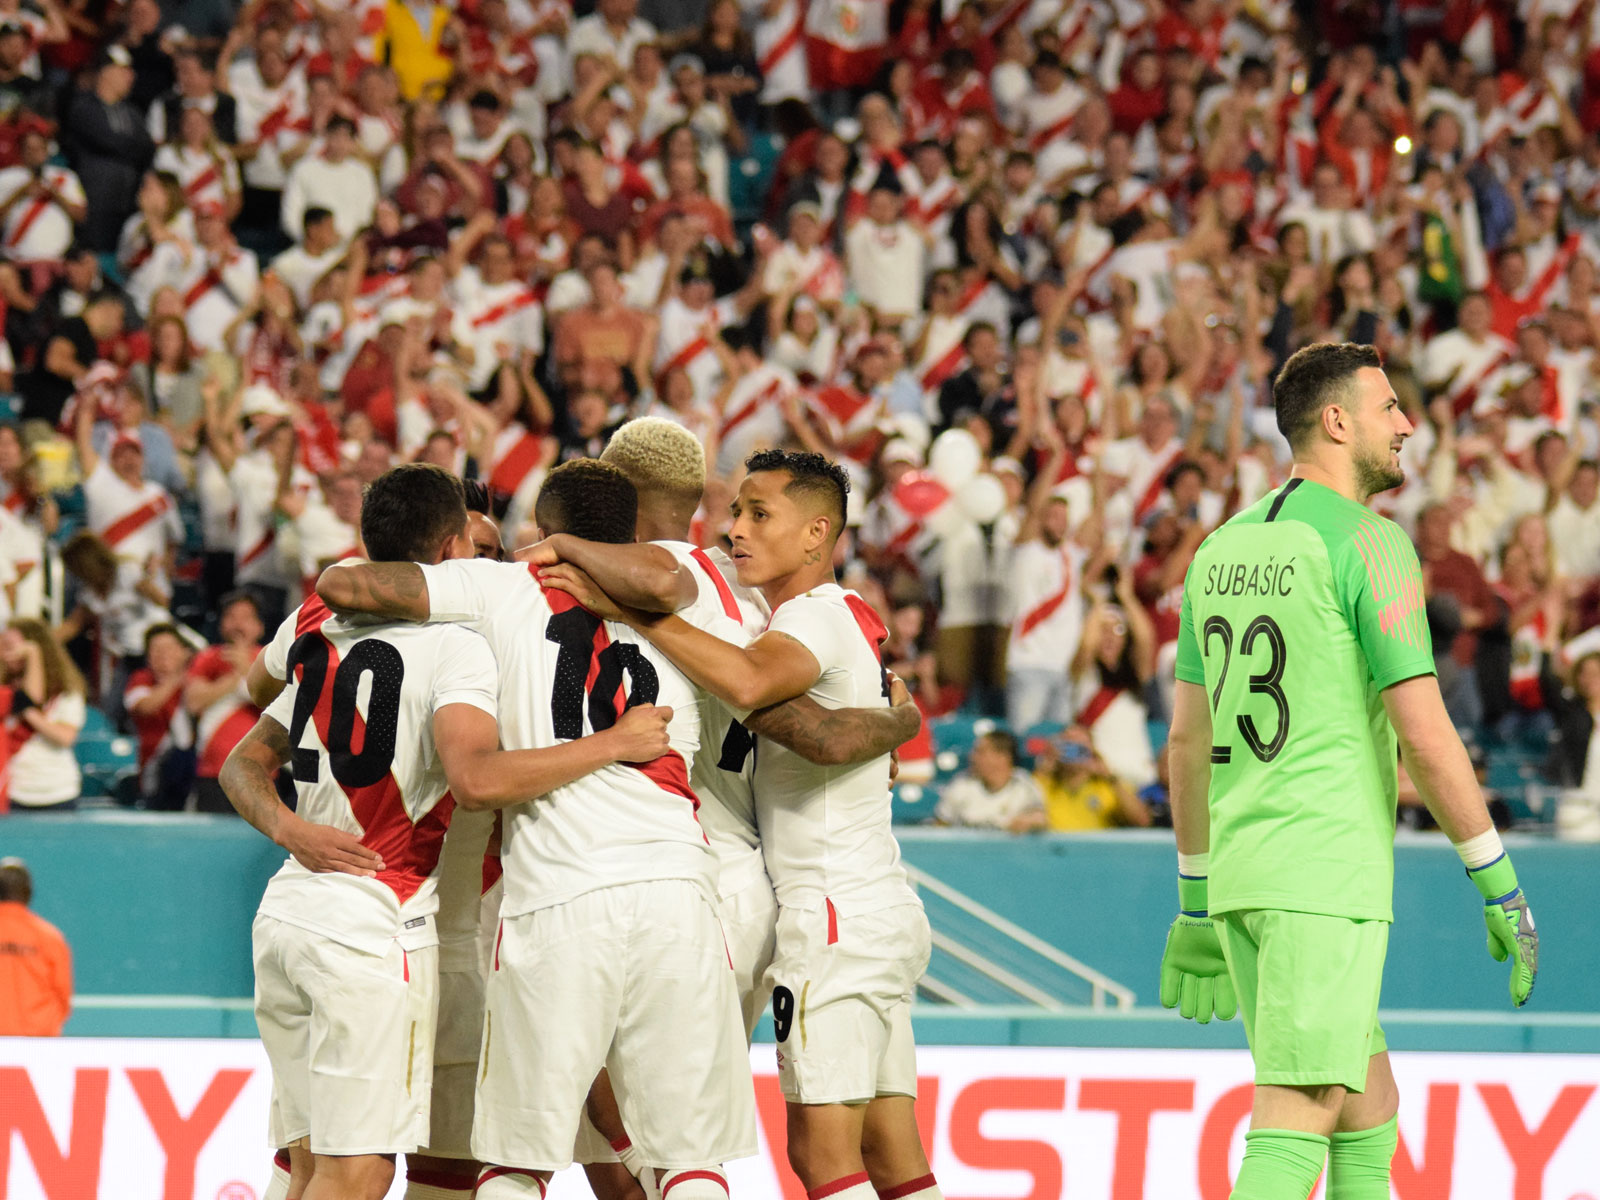 Peru beats Croatia in a pre-World Cup friendly